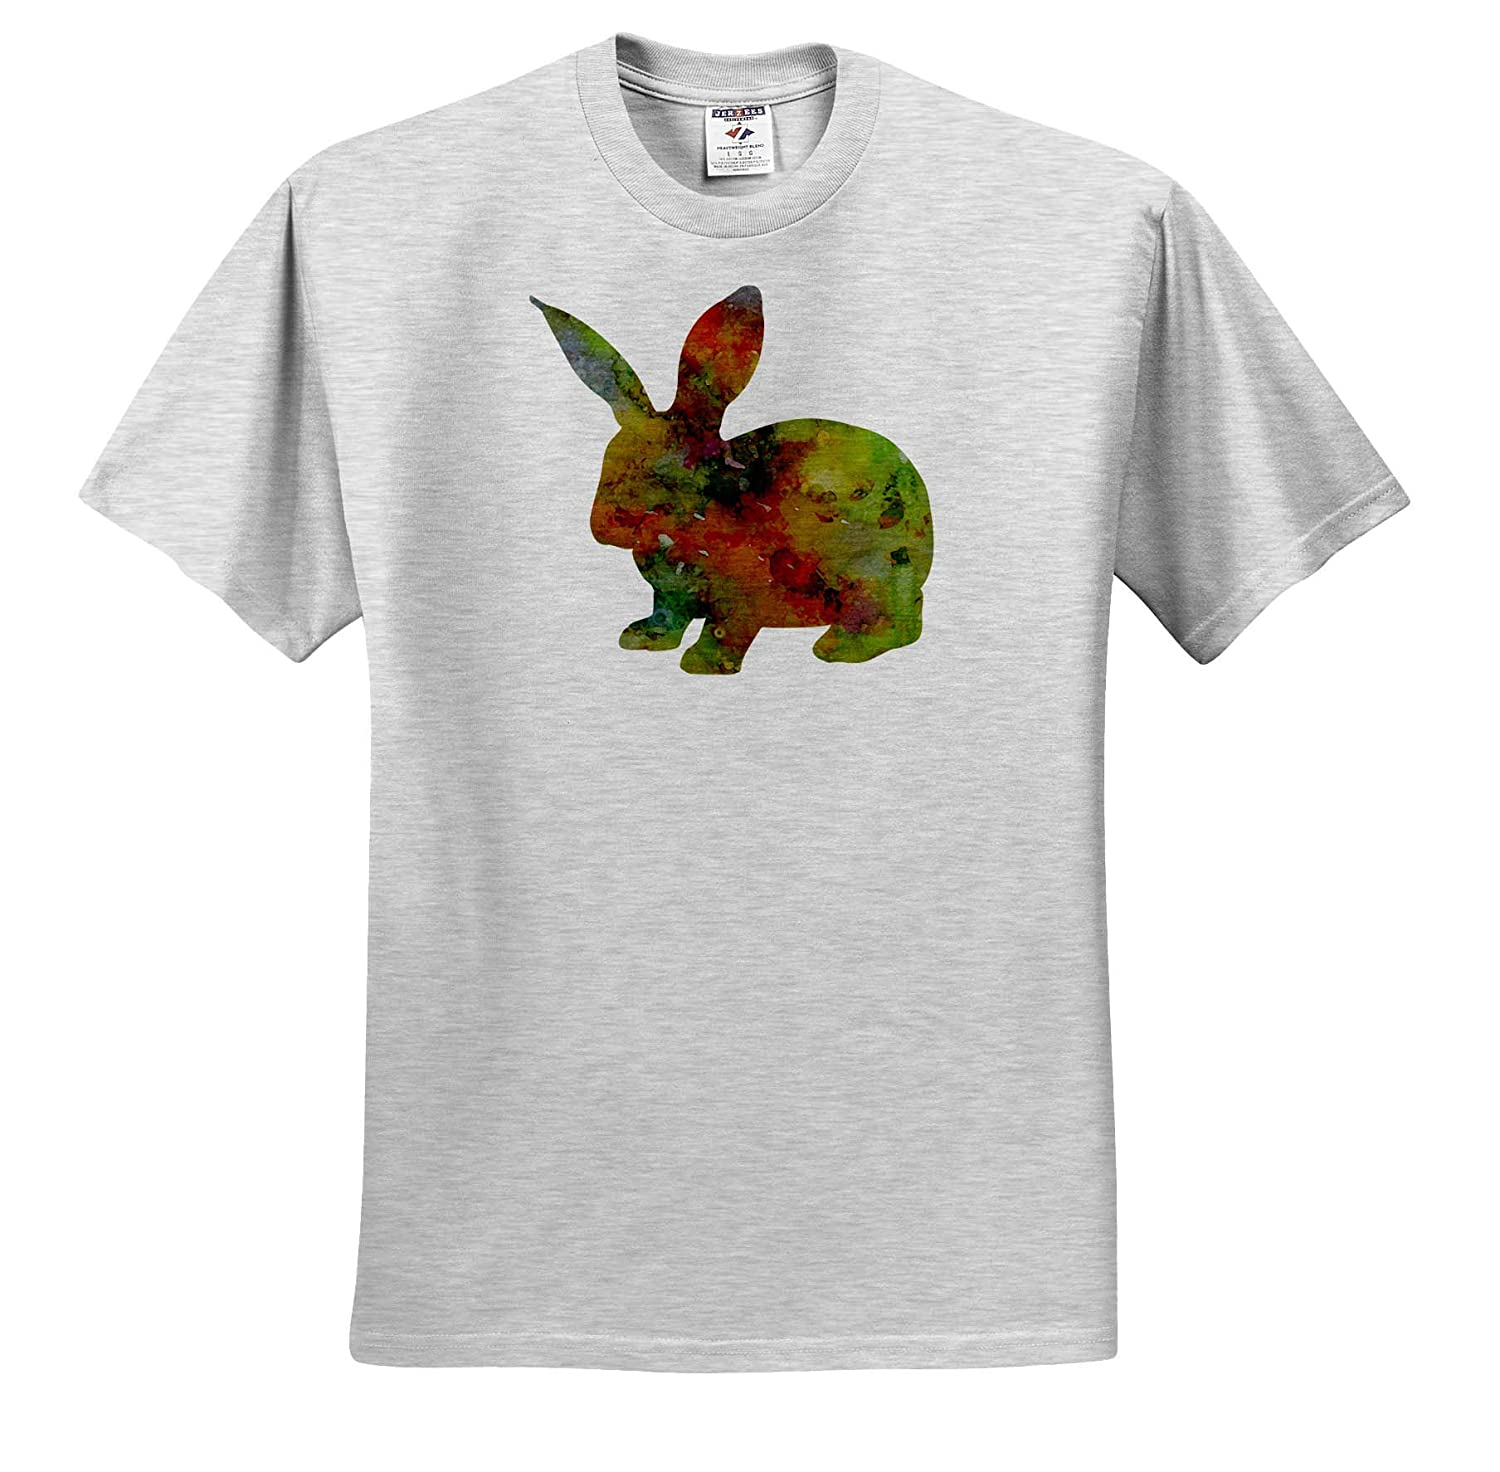 Adult T-Shirt XL ts/_309330 Watercolor Rabbit 3dRose Cassie Peters Rabbits